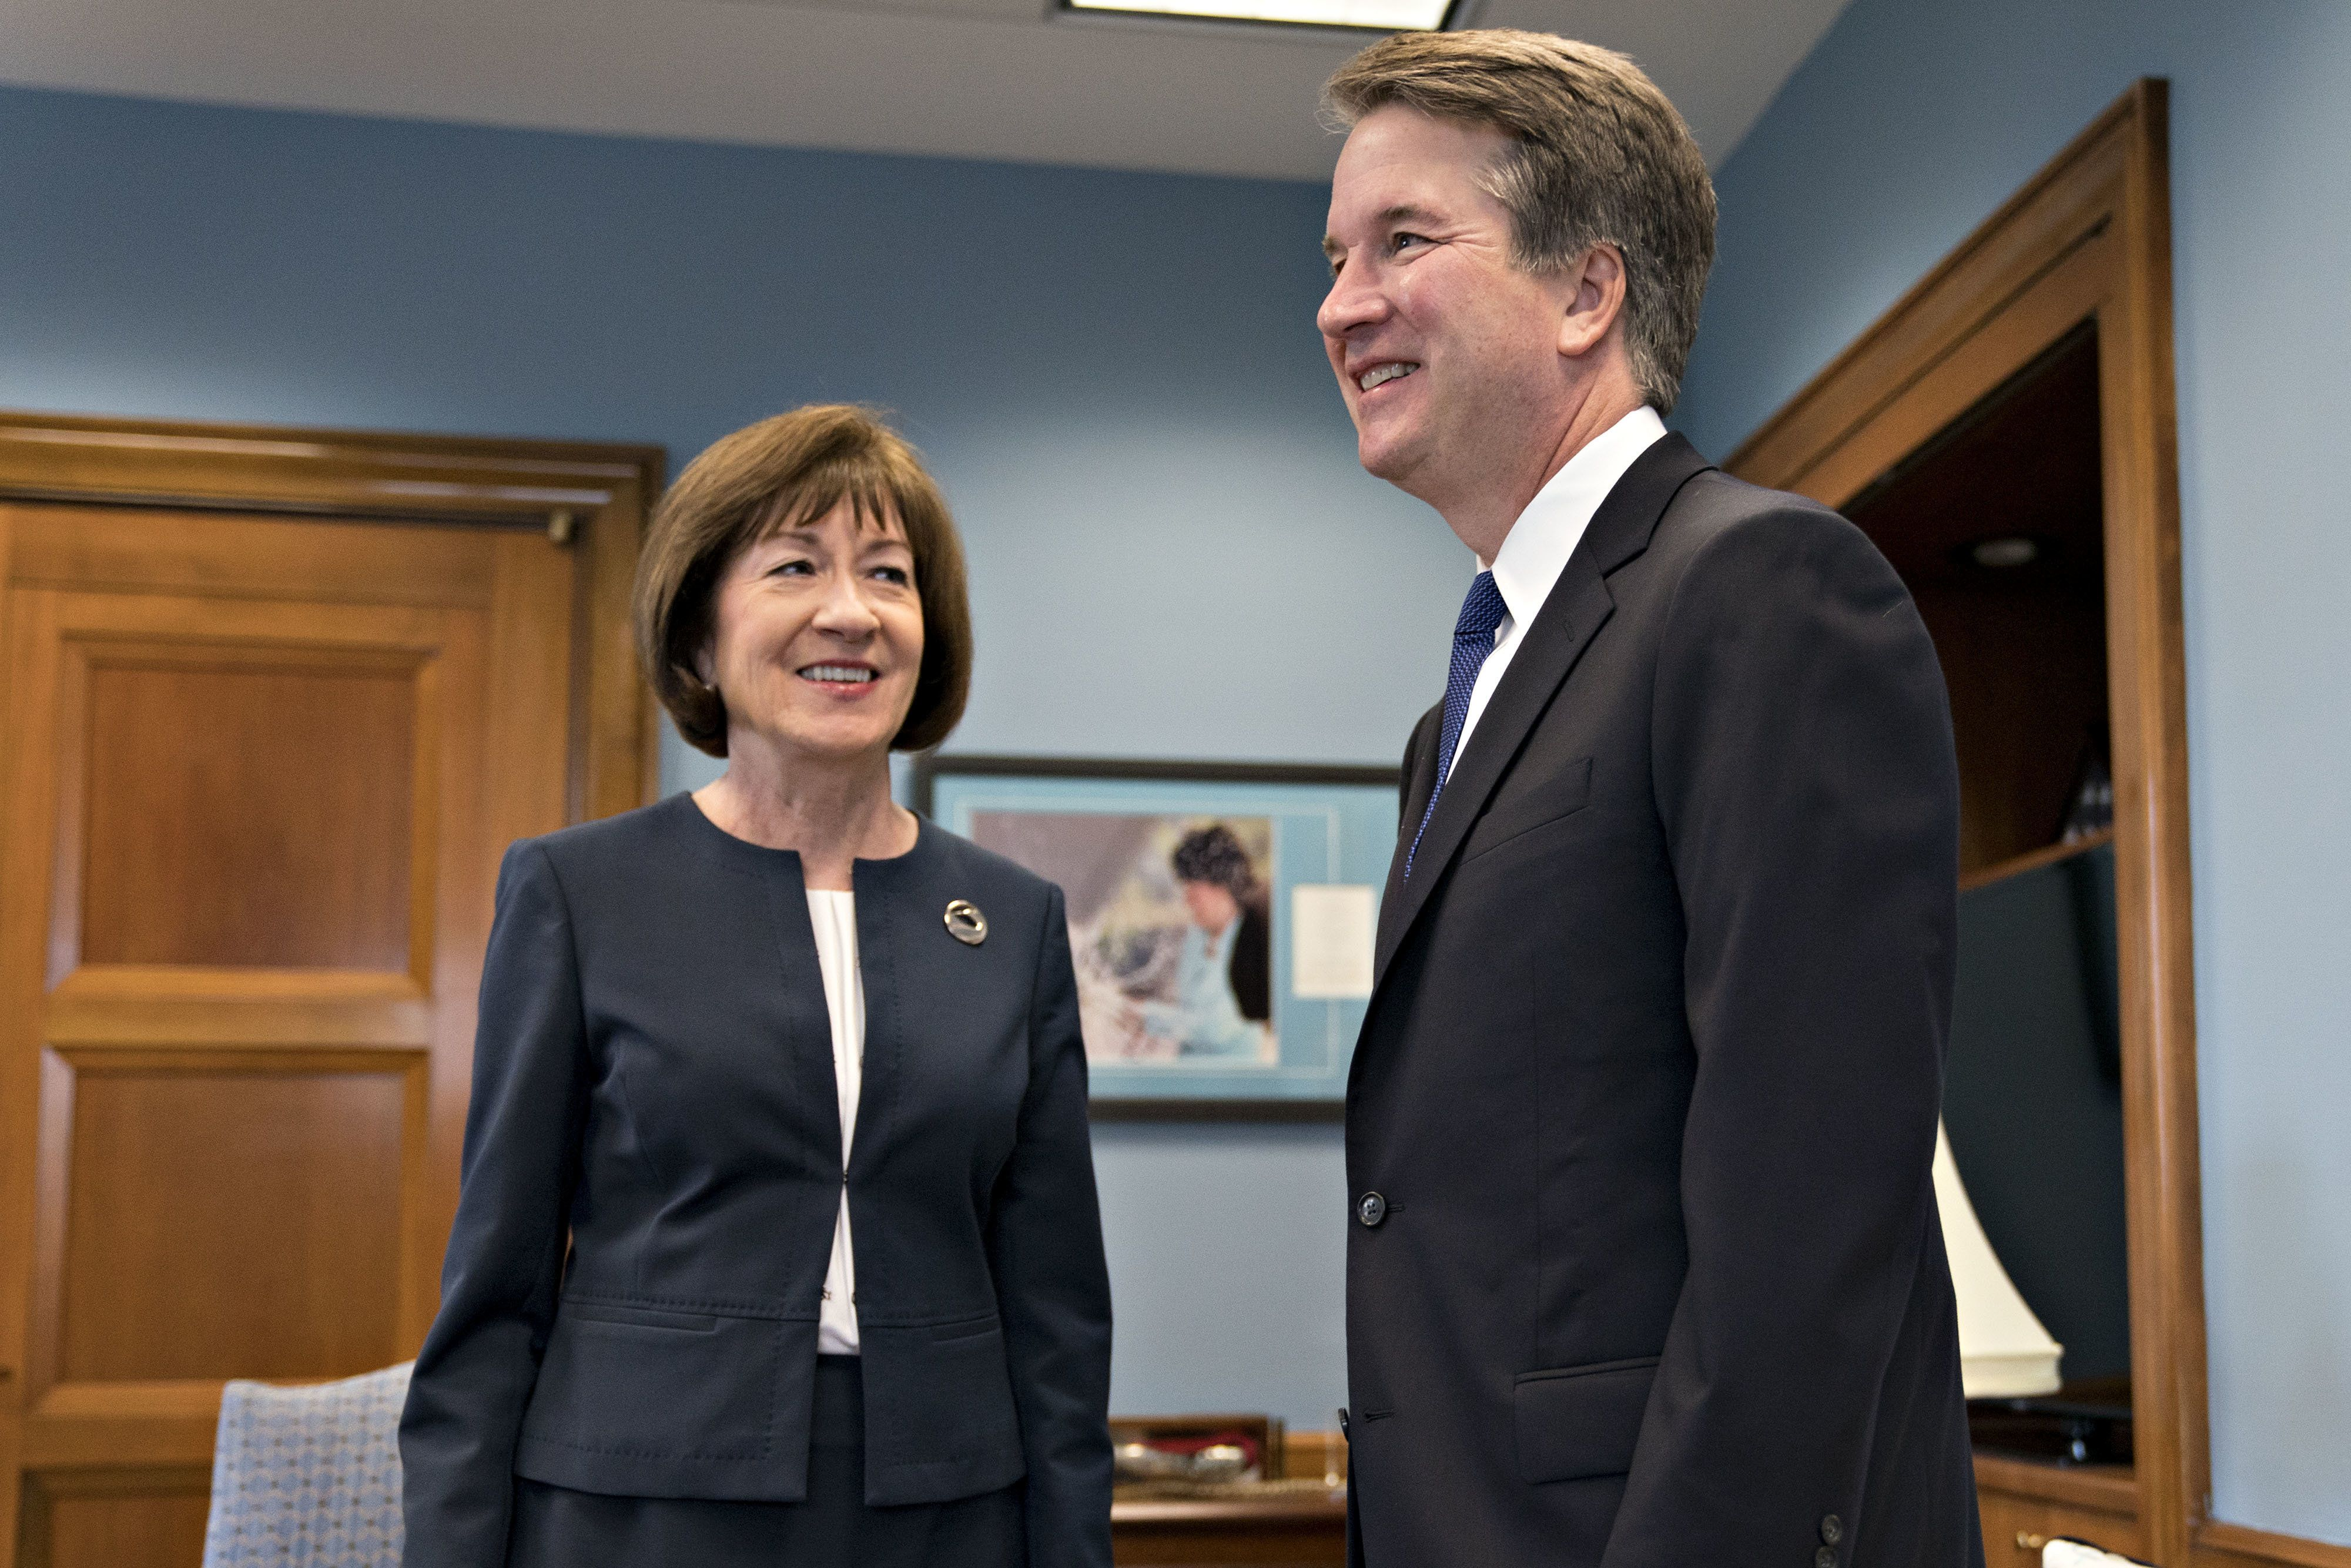 Brett Kavanaugh, U.S. Supreme Court associate justice nominee for U.S. President Donald Trump, right, and Senator Susan Collins, a Republican from Maine, smile during a meeting on Capitol Hill in Washington, D.C., U.S., on Tuesday, Aug. 21, 2018. Collins plans to ask Kavanaugh about abortion and said she intended to talk about his praise for the then-Justice William Rehnquist's dissent in Roe v. Wade, the landmark 1973 abortion-rights case. Photographer: Andrew Harrer/Bloomberg via Getty Images